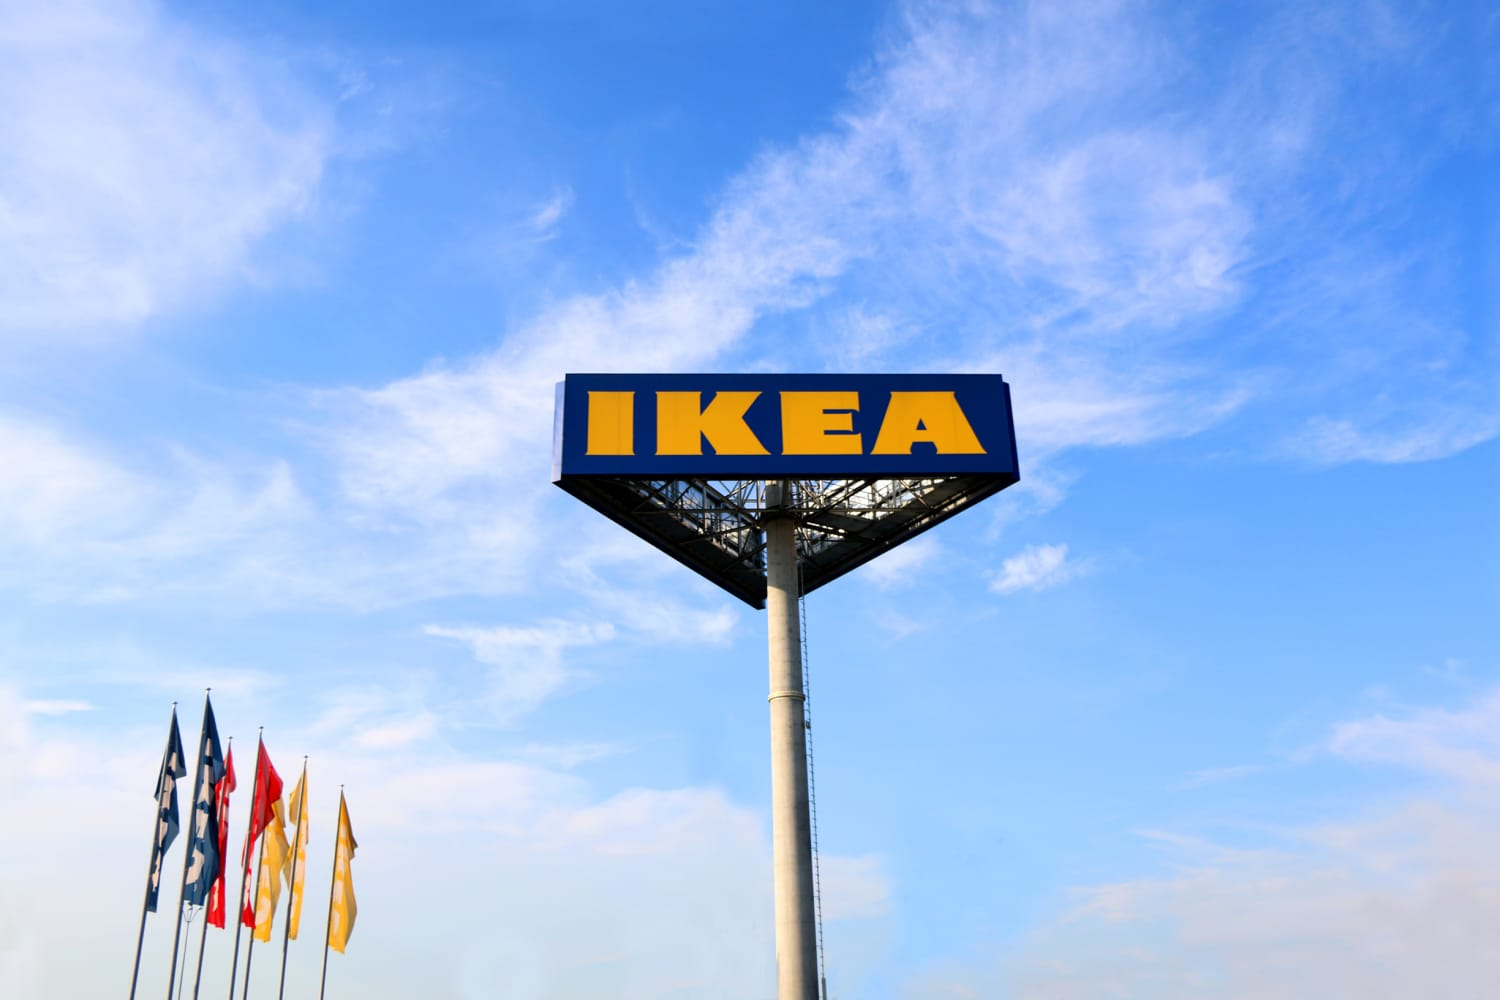 One IKEA Location Is Letting People Pay with Time Instead of Money